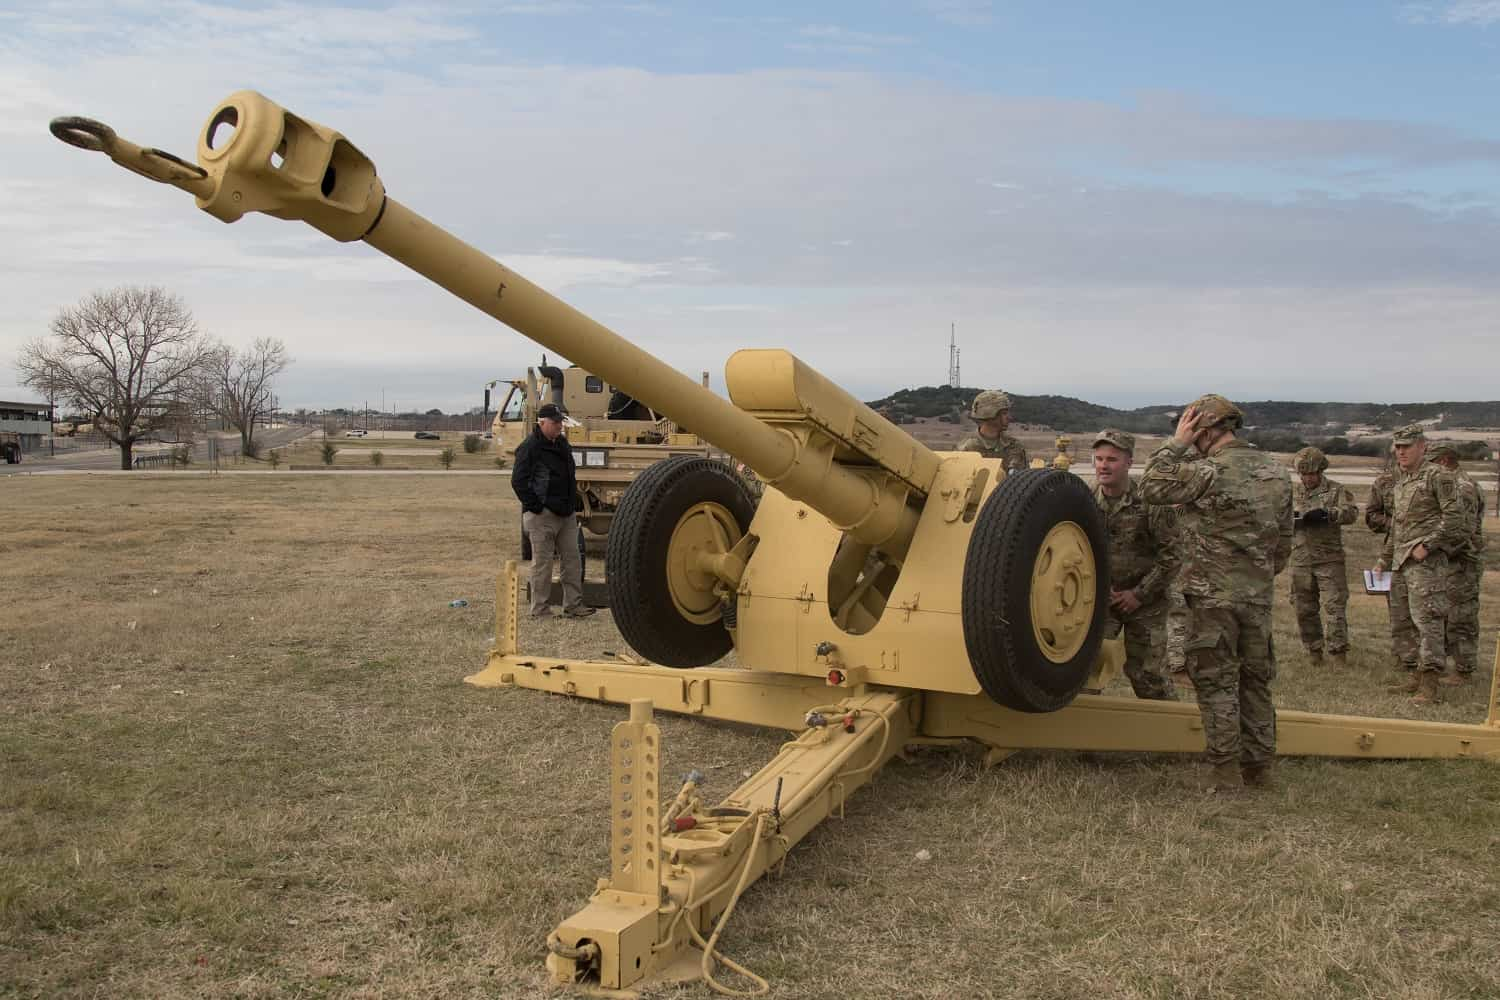 Weapons Of Karabakh War: The Soviet D-30 122mm Howitzer